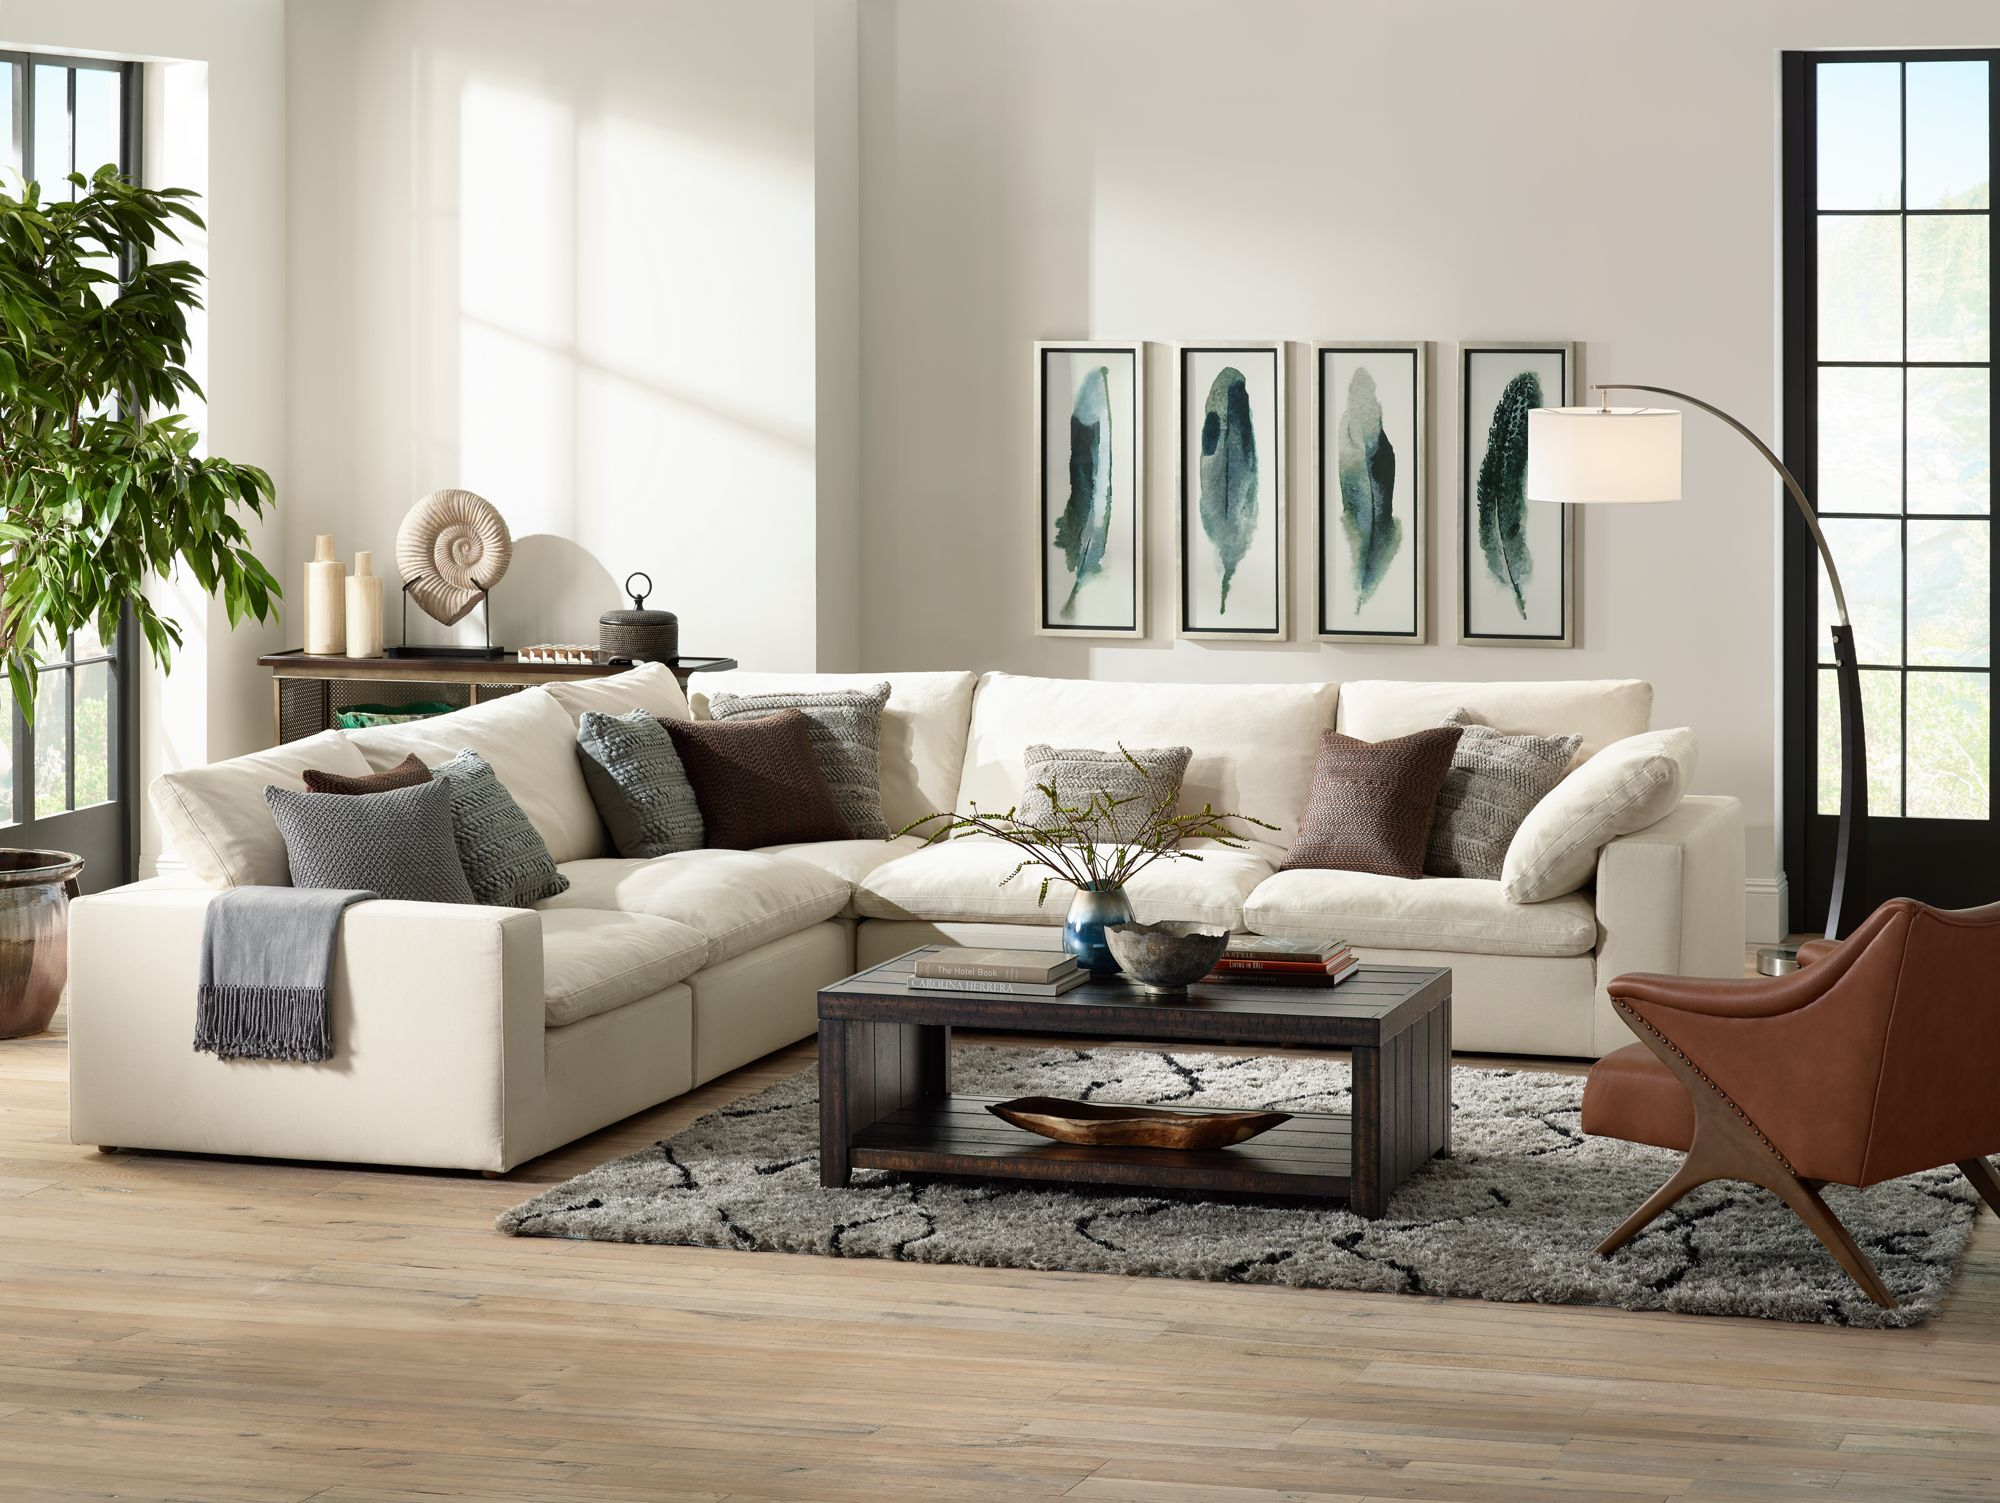 Comfy Sectional Seating Paired With A Large Arc Floor Lamp.